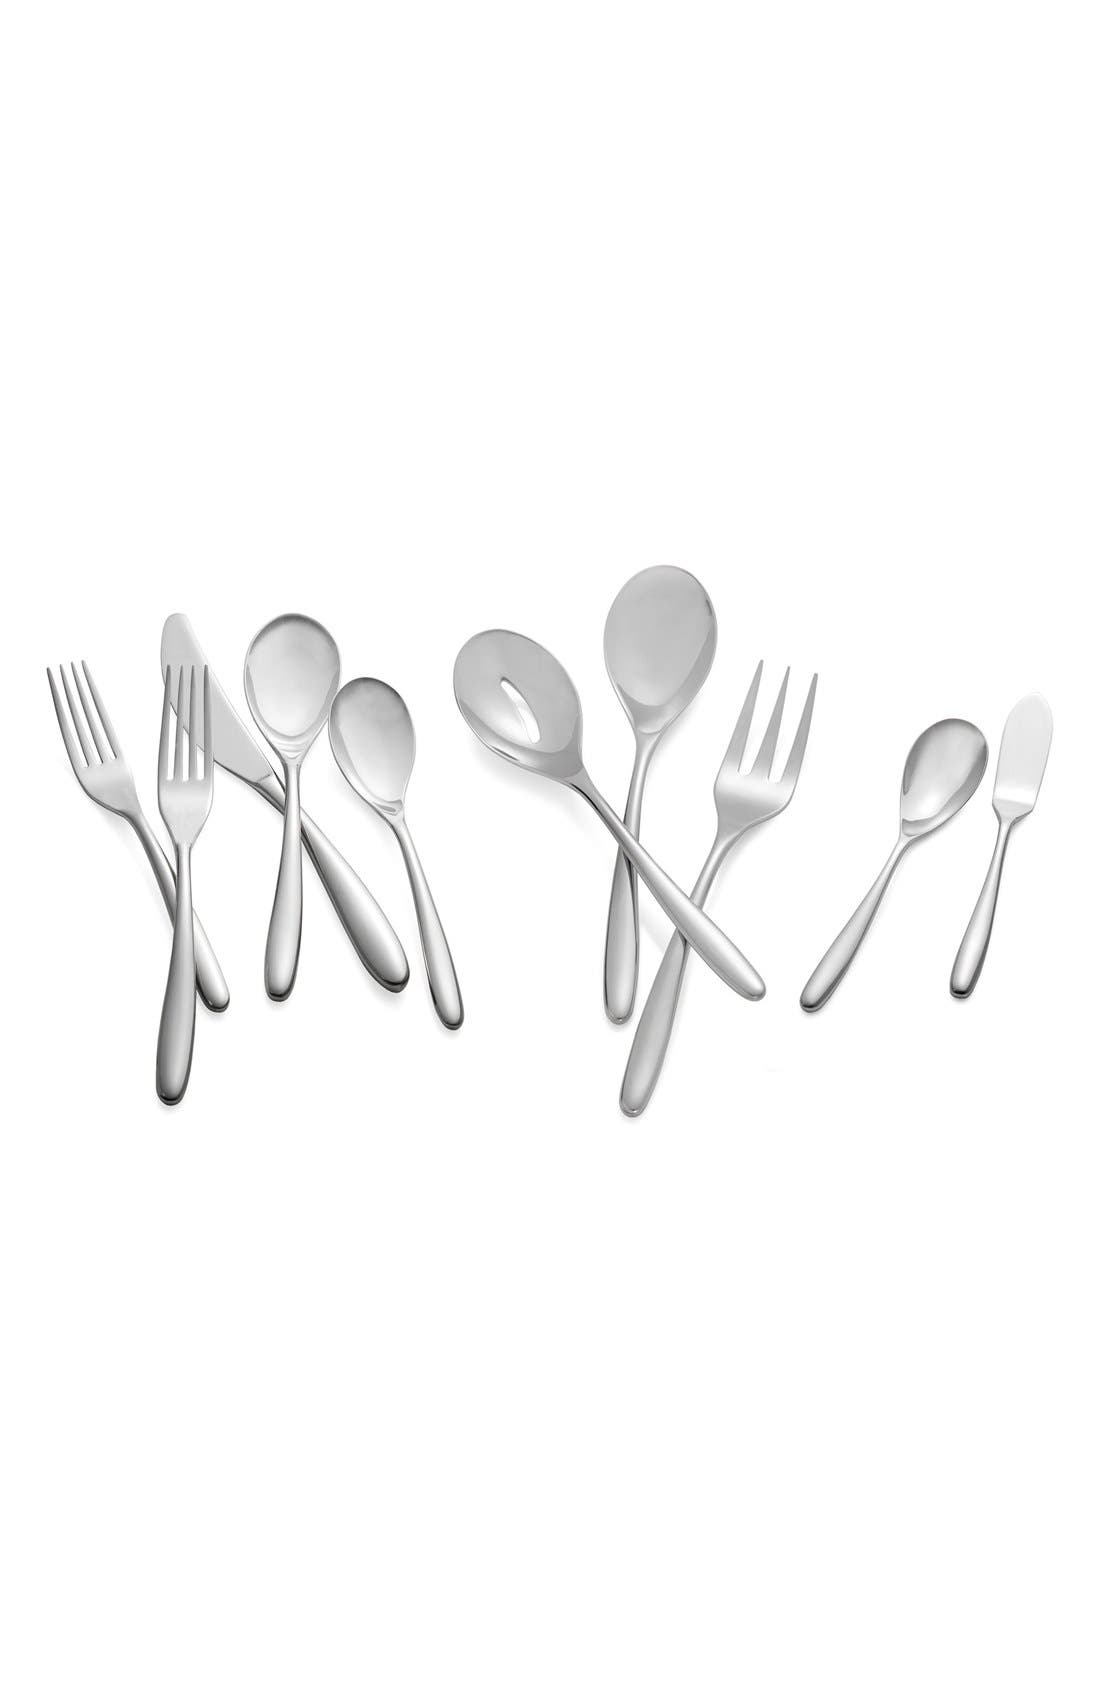 'Bend' 45-Piece Flatware Set,                         Main,                         color, SILVER